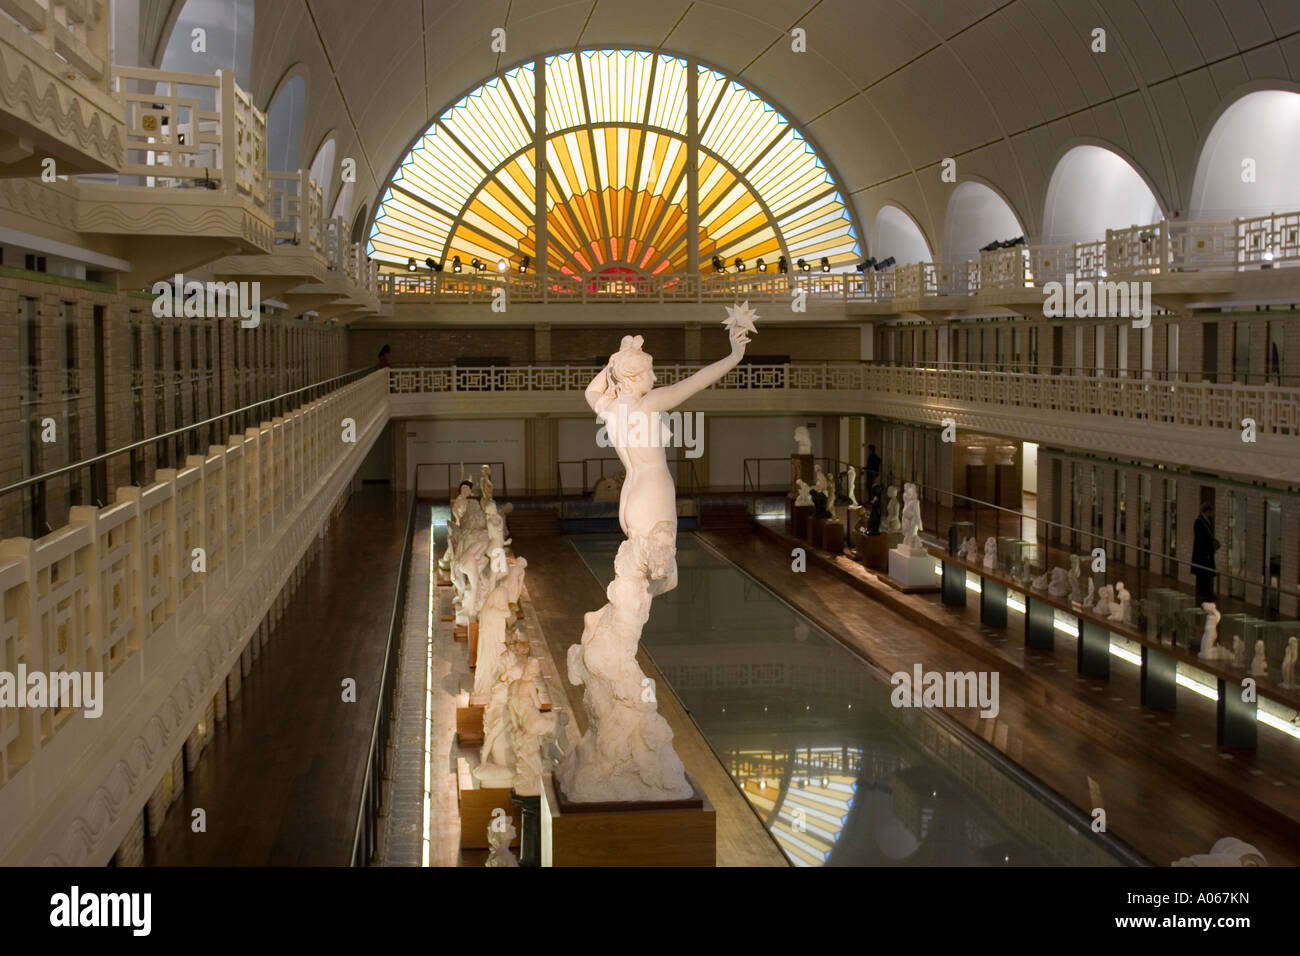 Art and industry museum la piscine lille france stock for Art deco piscine